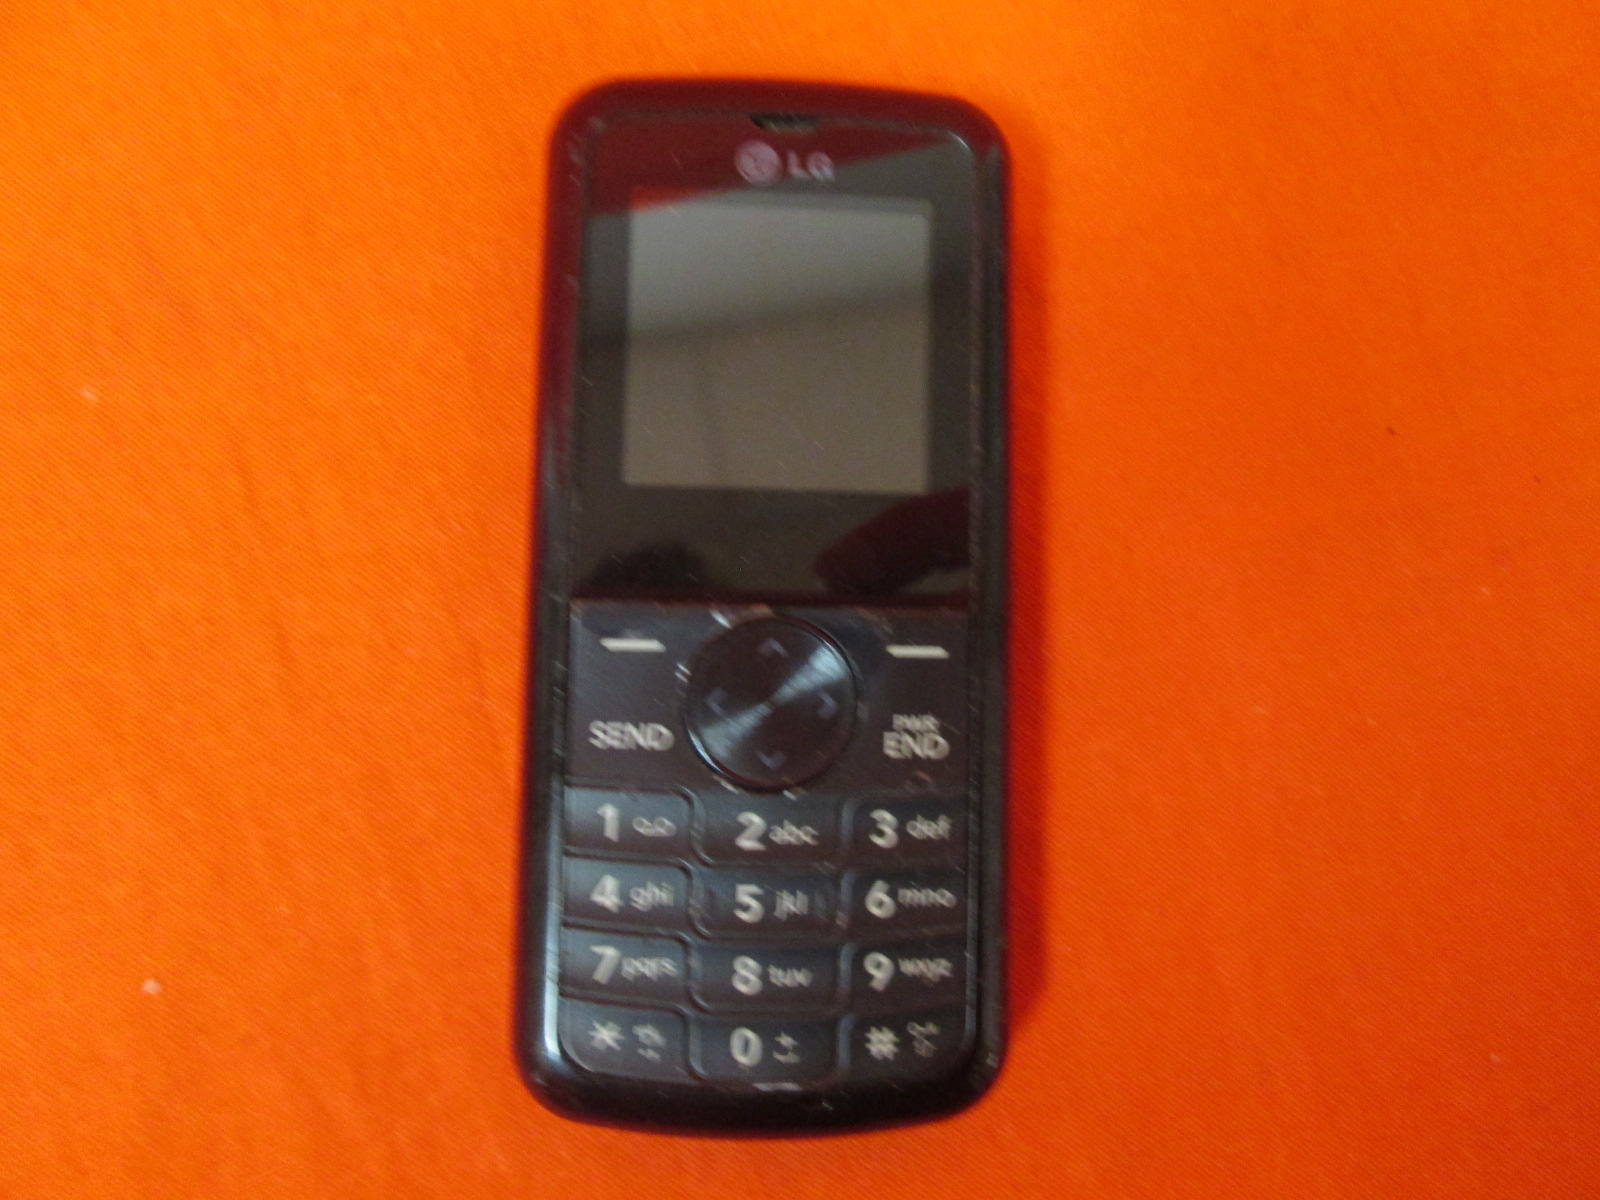 LG 300 Pre-Paid Cell Phone For NET10 Black